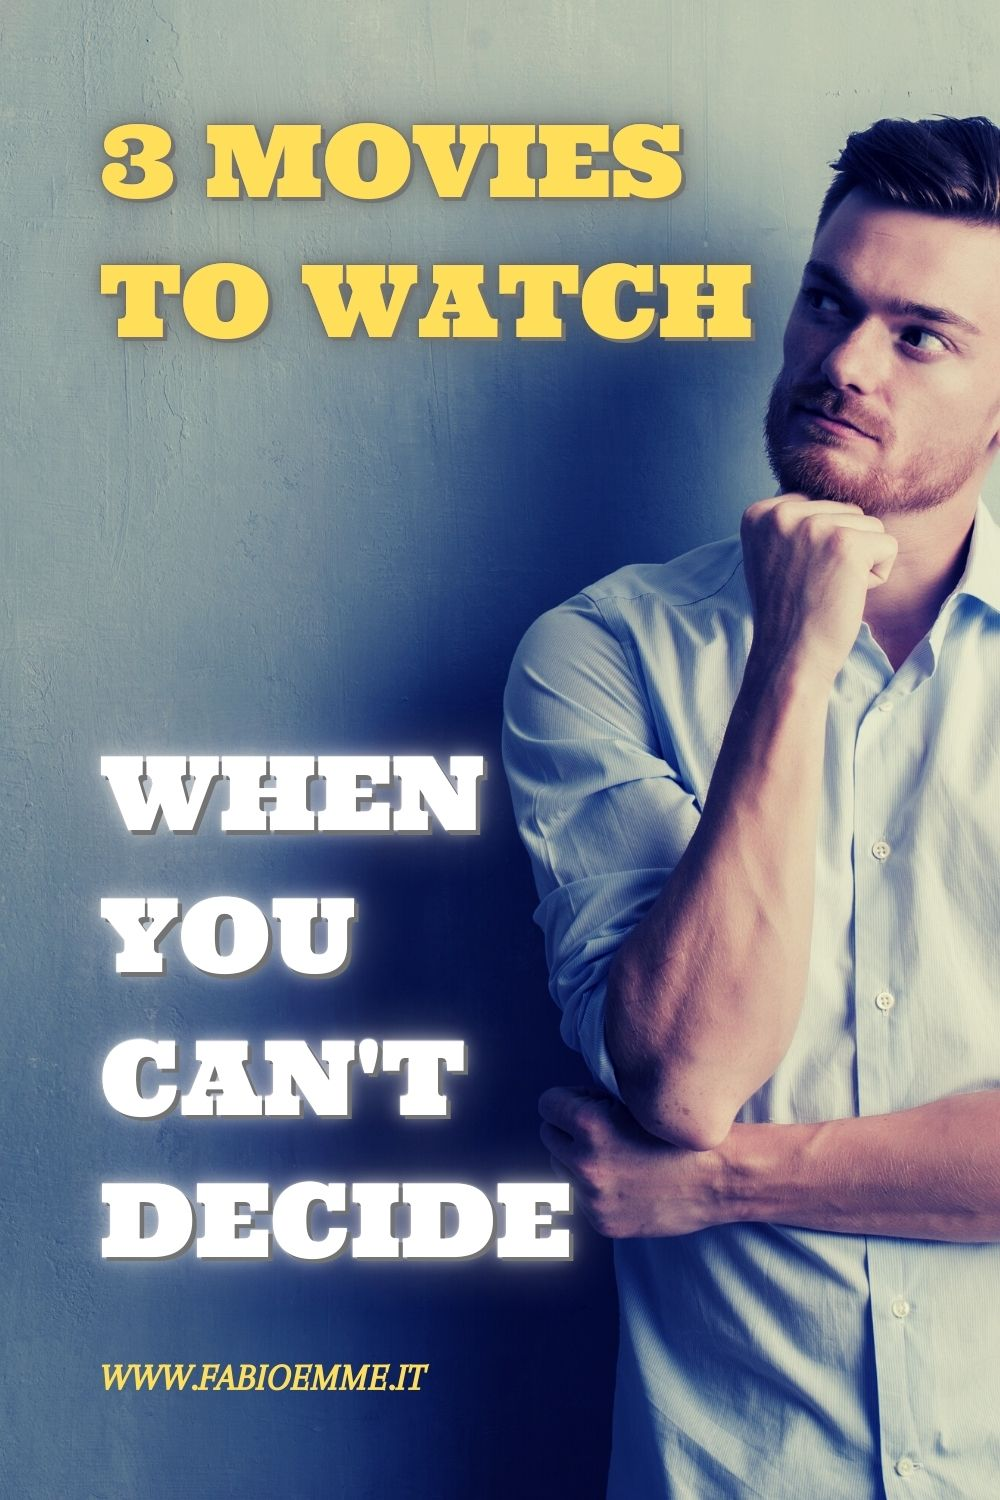 Here for you three movies to put on your tv when you can't decide what to watch after a long stressful day... alone or with friends! #MOVIES